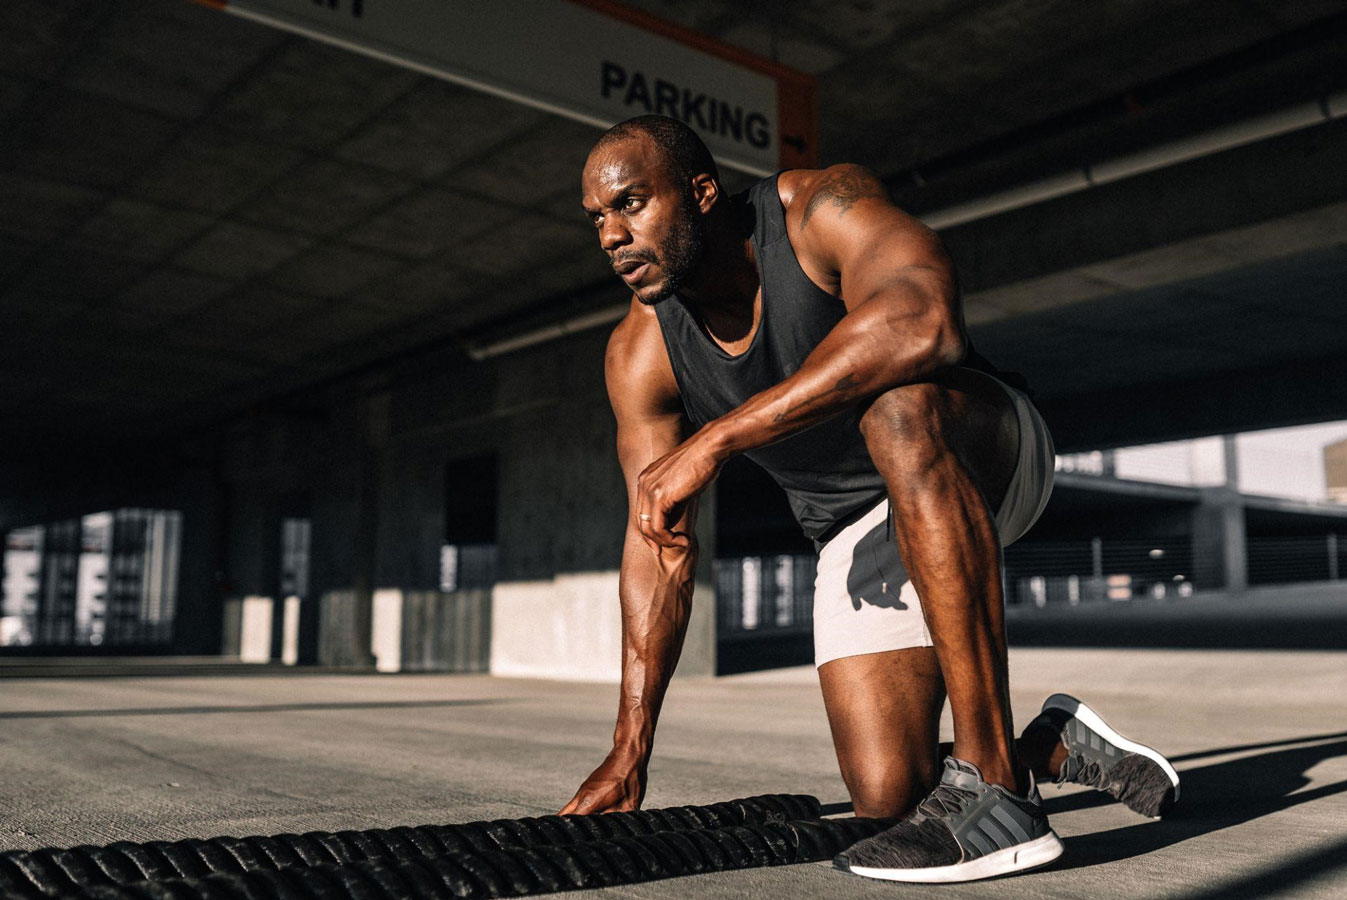 Five Ways to Get the Most Out of Your Workouts